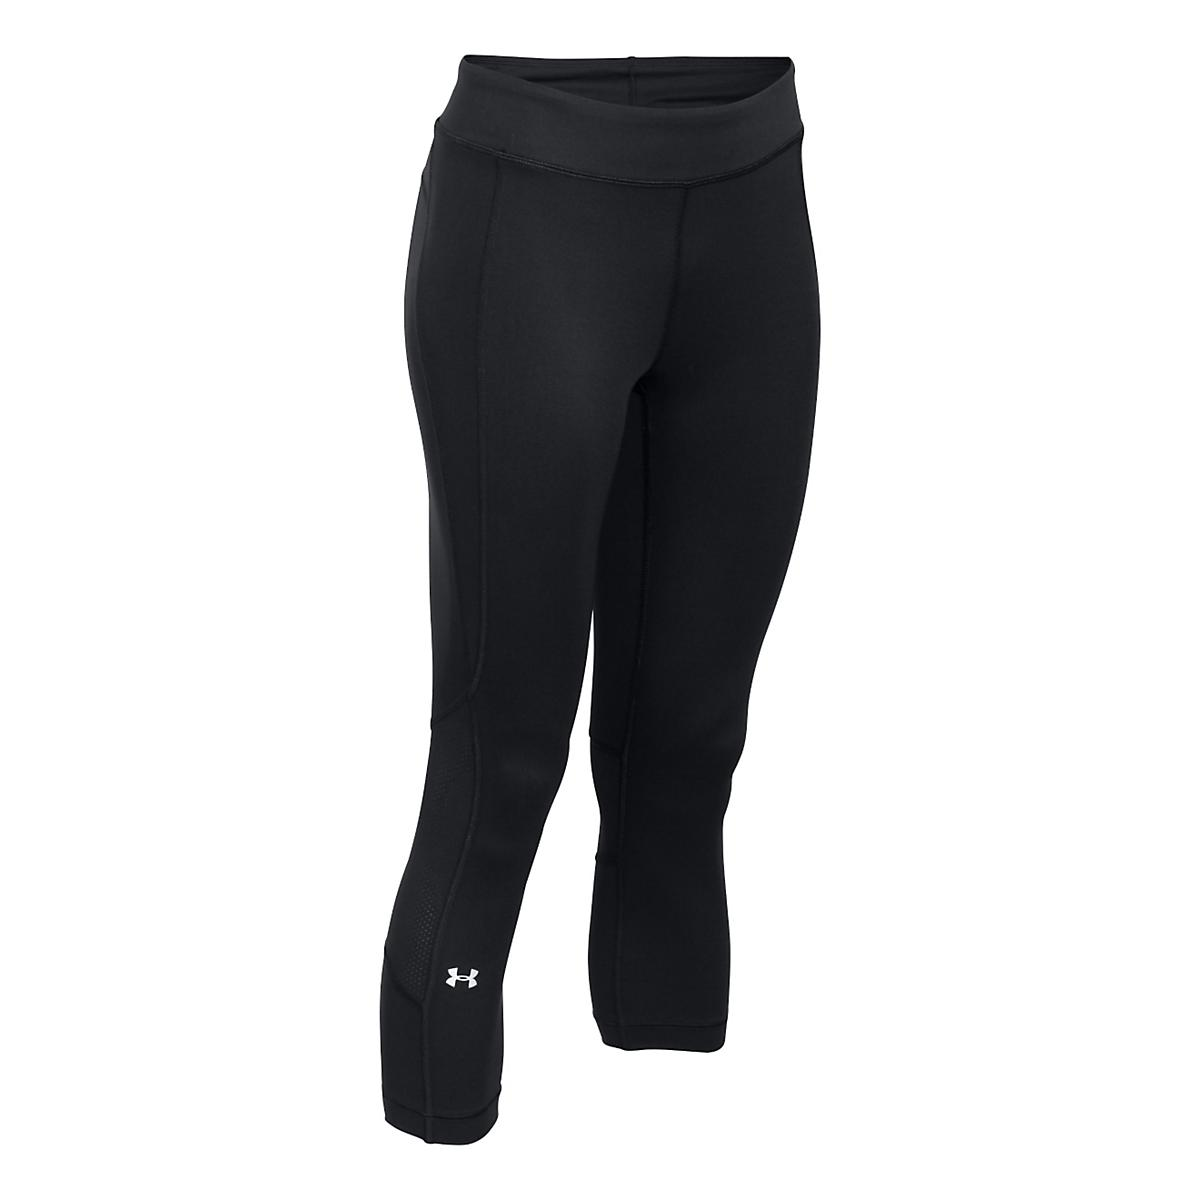 Women's Under Armour�Heatgear Armour Crop